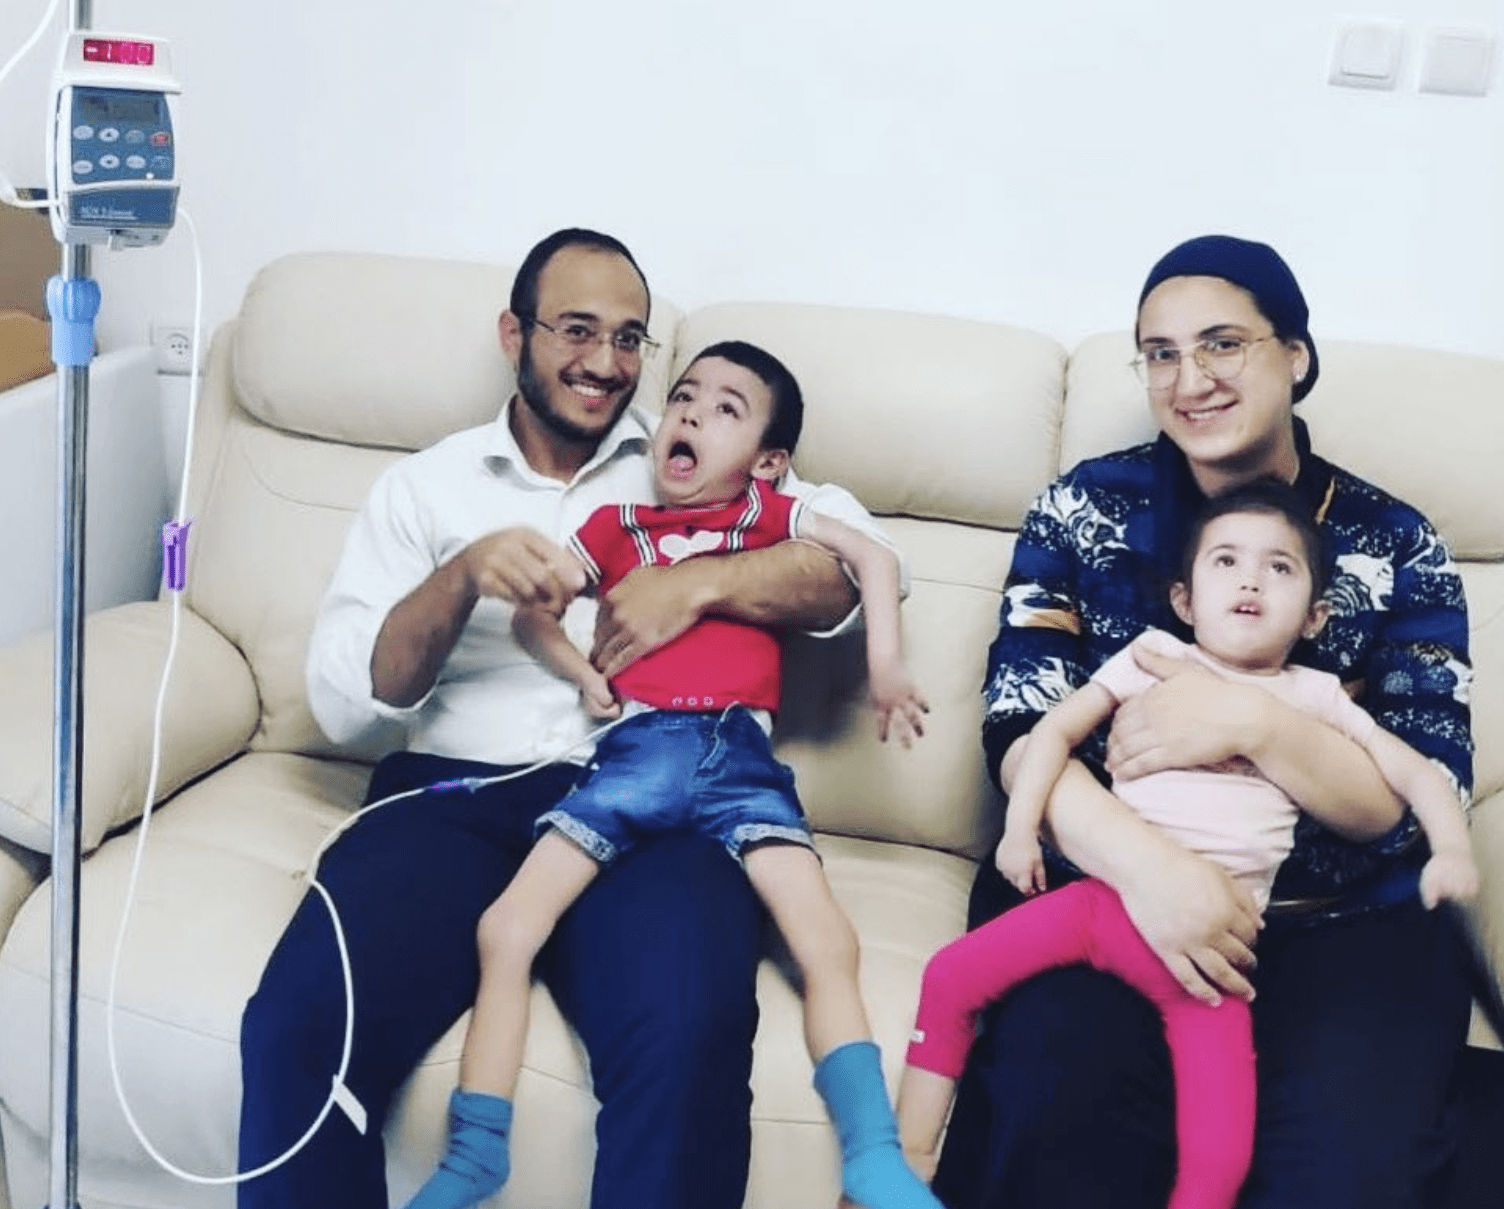 The brothers Meir and Yehudit with childhood parkinsons will improve